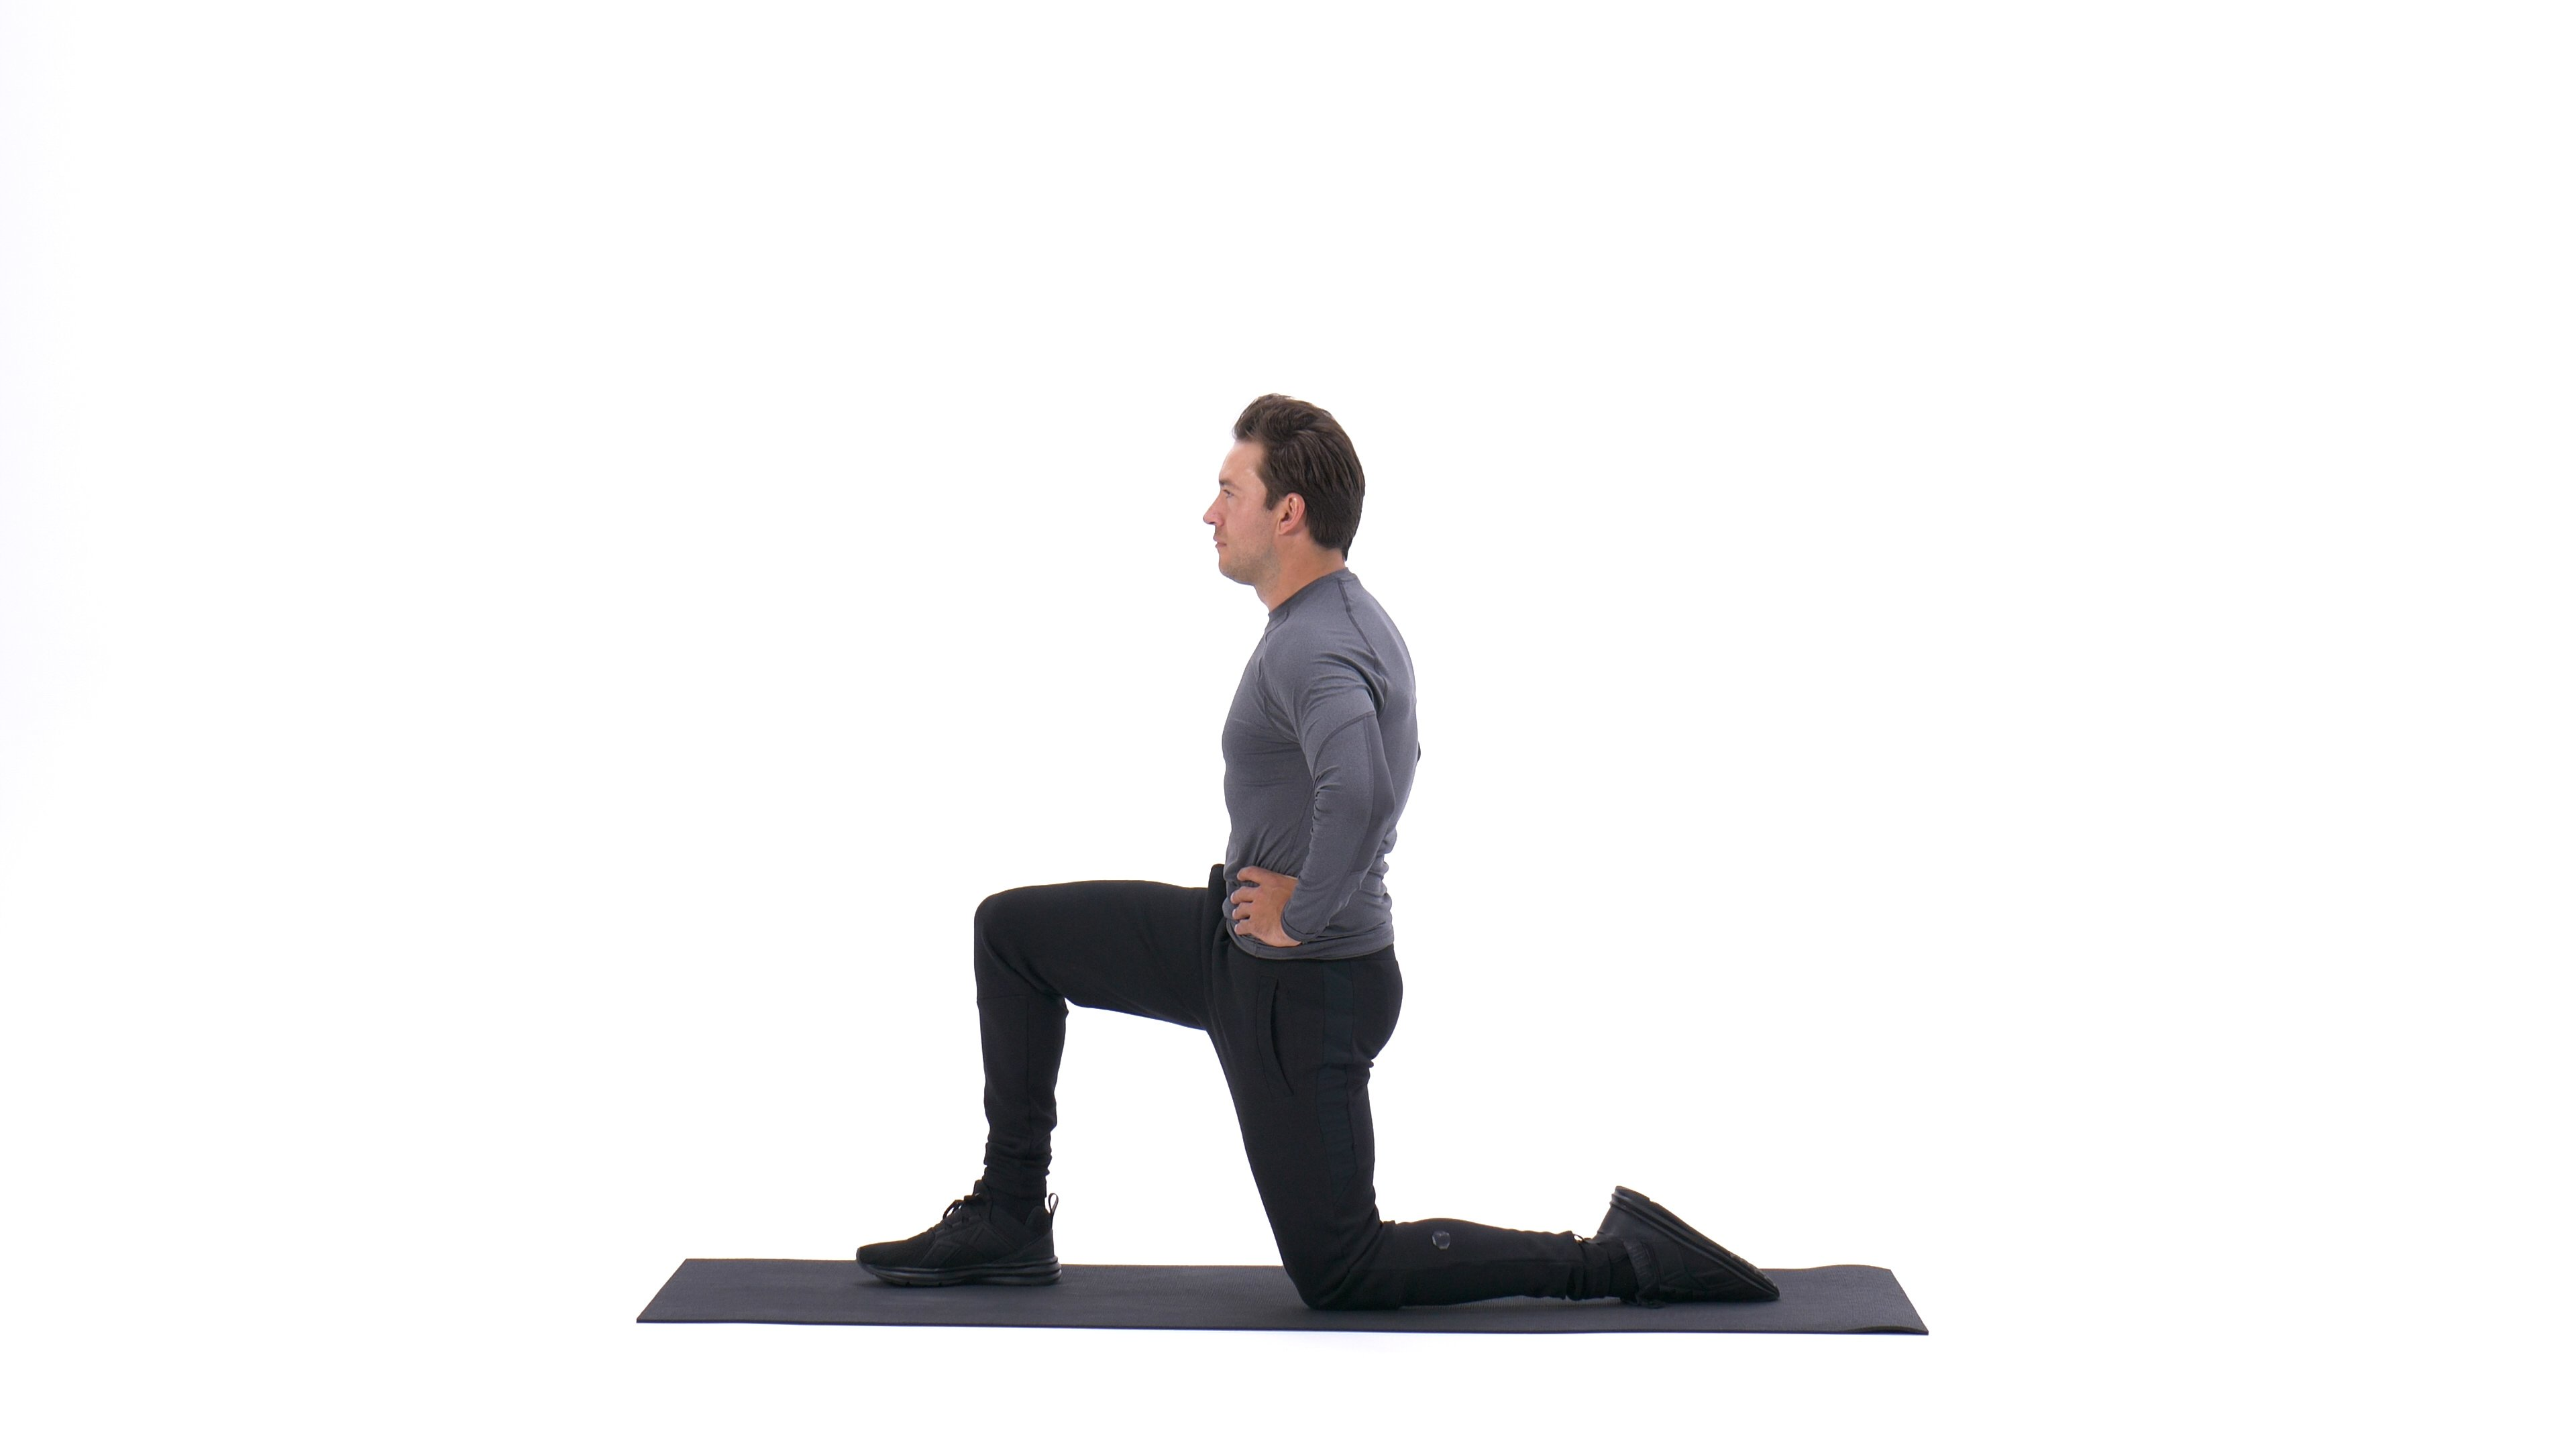 Kneeling hip flexor stretch image